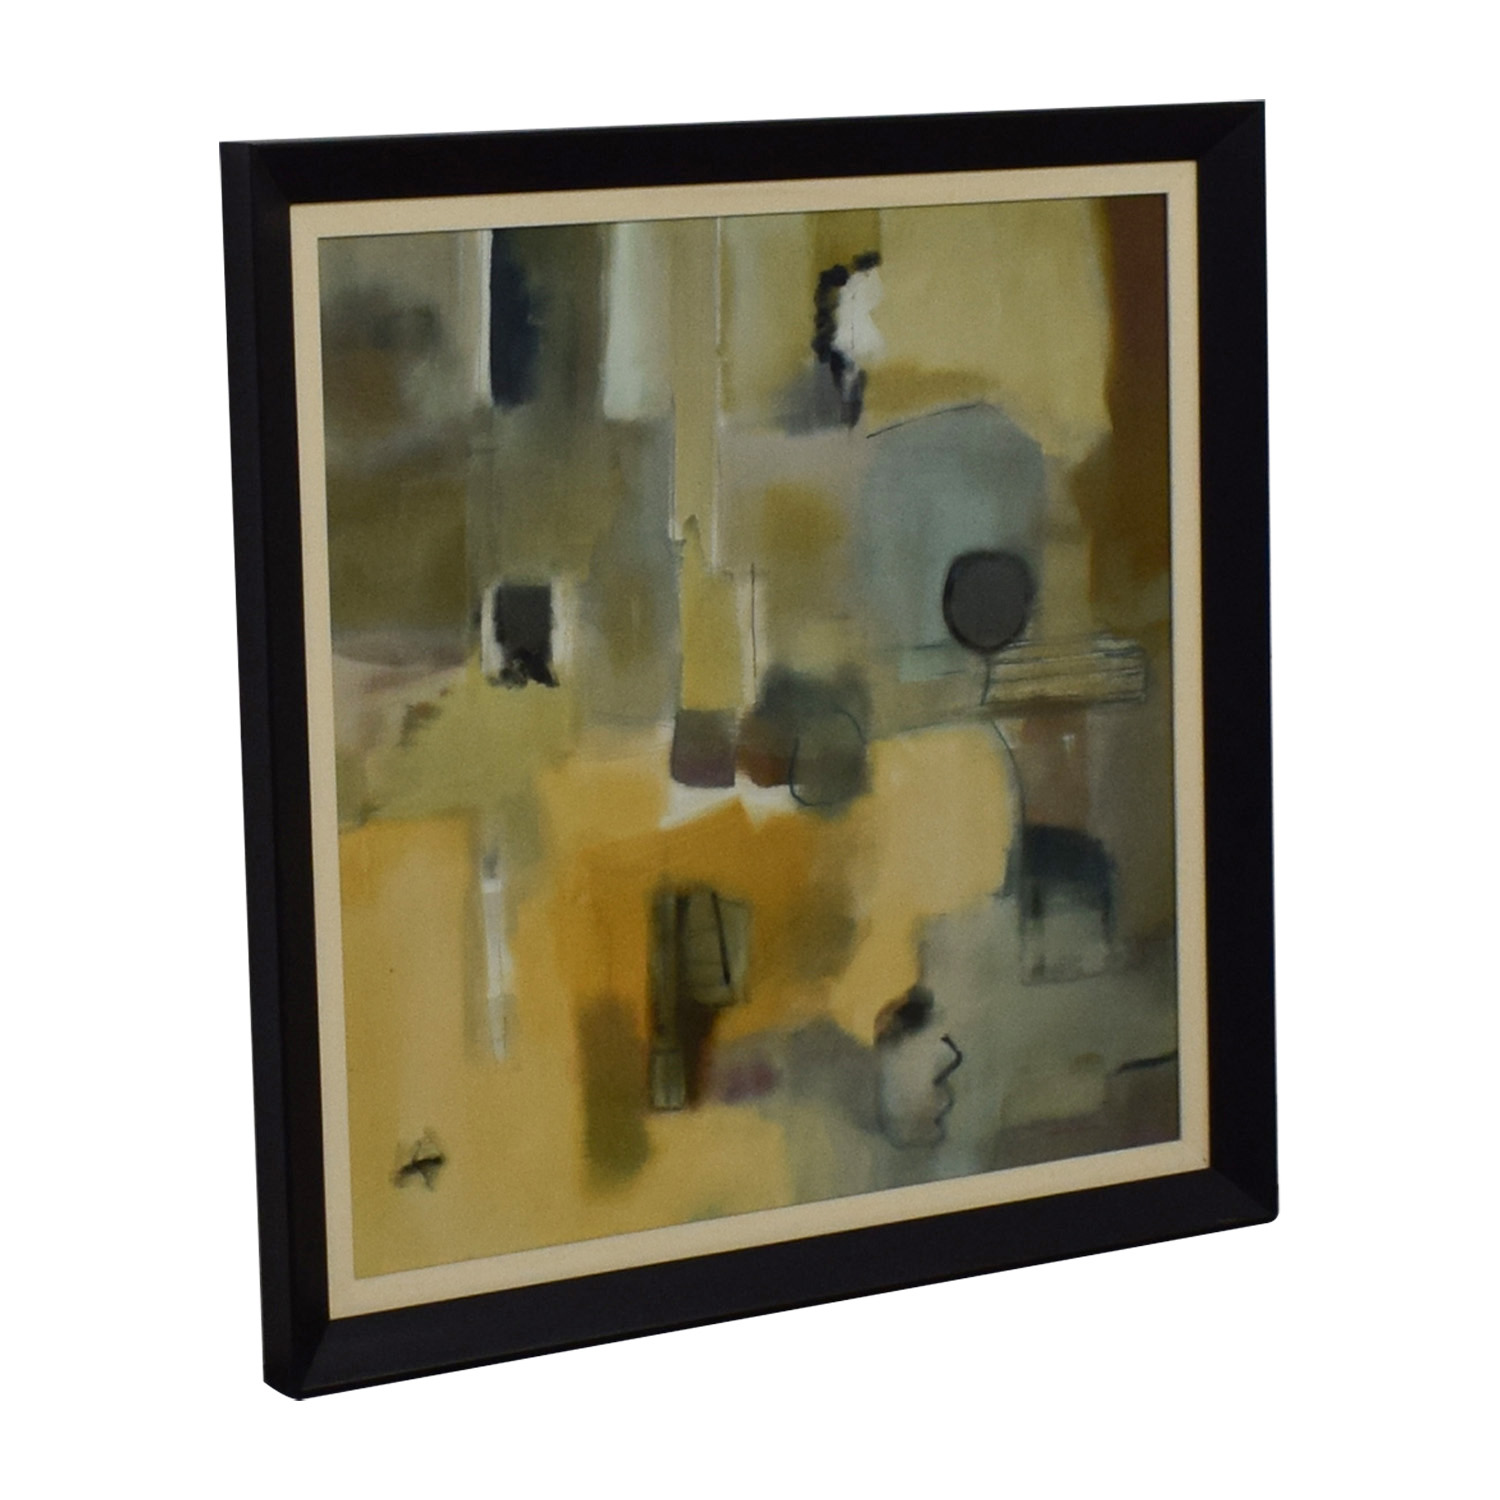 buy The Bombay Company Framed Art Nancy Ortenstone Music of the Moment The Bombay Company Decor